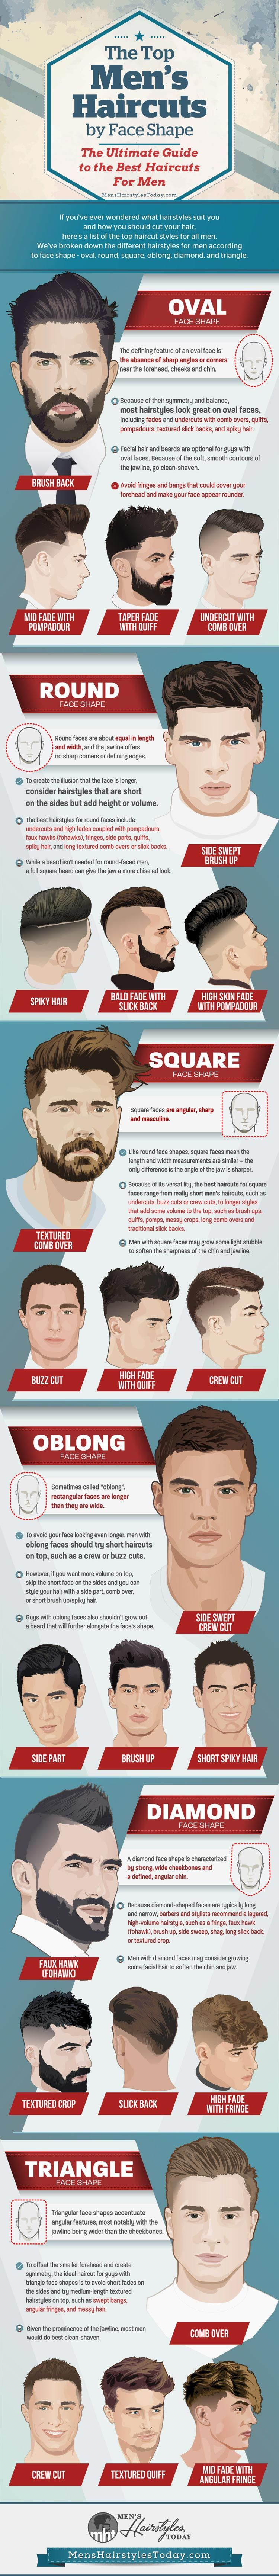 Best haircuts for men the ultimate guide to the best haircuts for men infographic